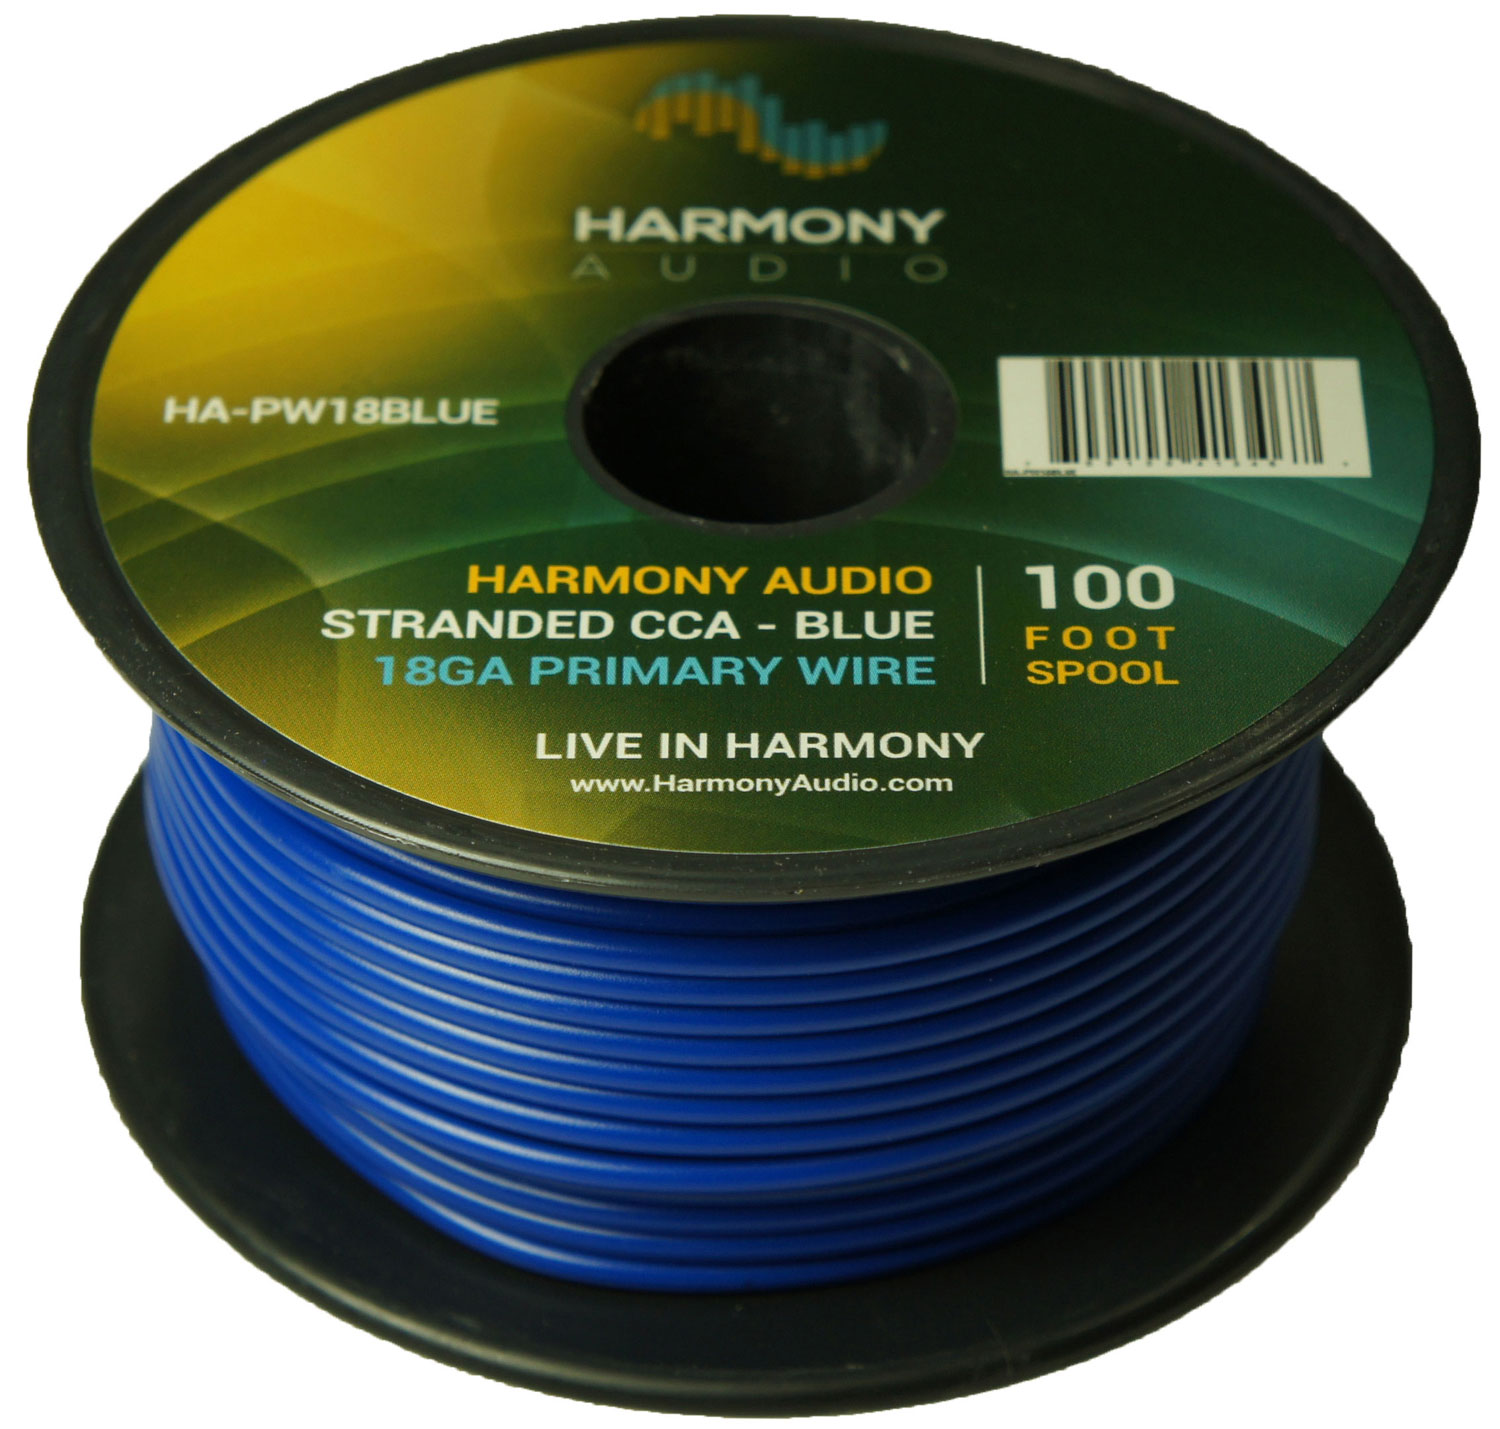 Harmony Audio HA-PW18BLUE Primary Single Conductor 18 Gauge Blue Power or Ground Wire Roll 100 Feet Cable for Car Audio / Trailer / Model Train / Remote